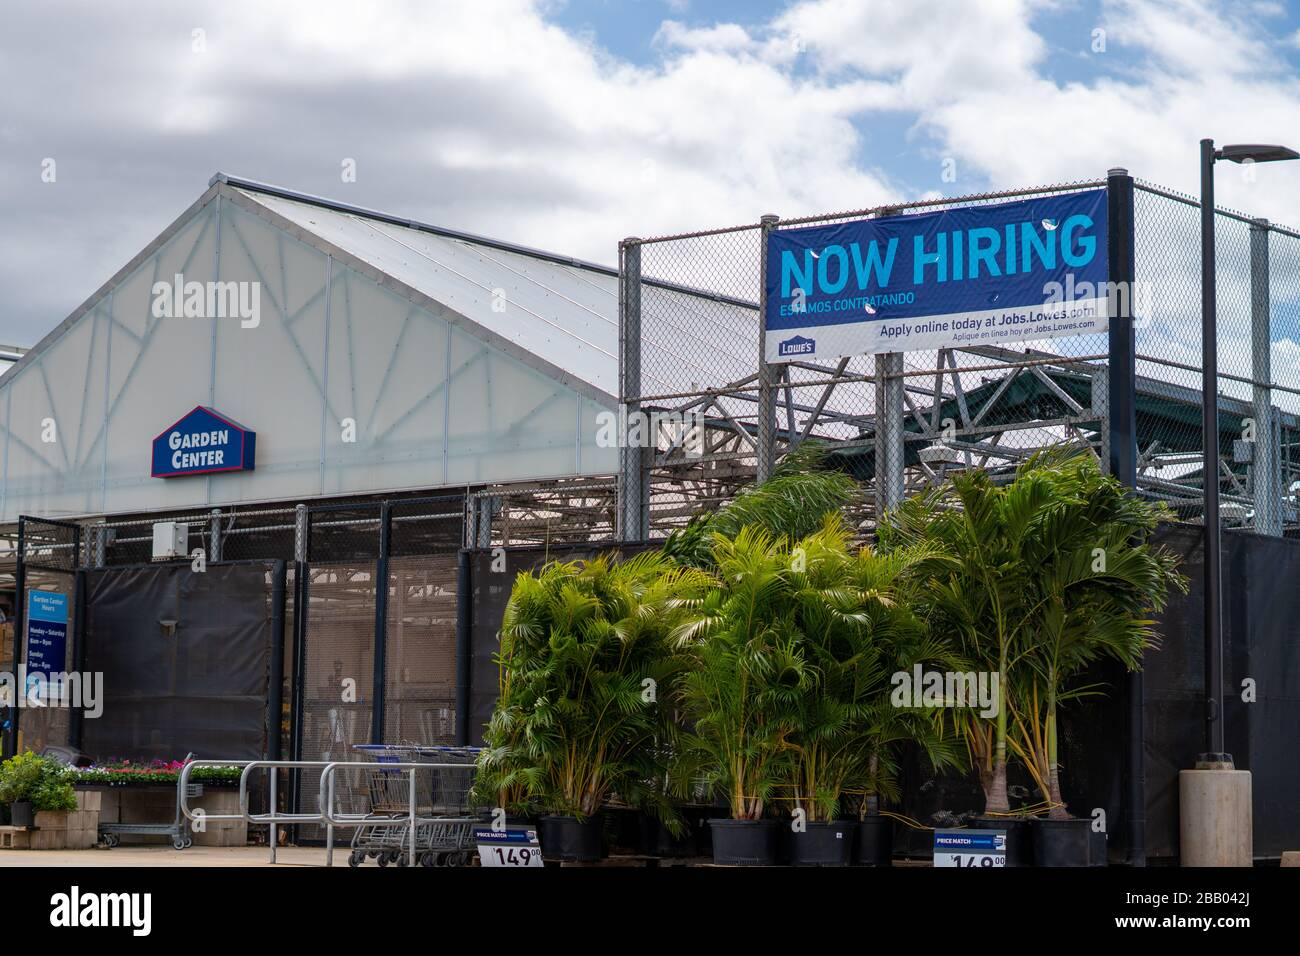 Lowe S Now Hiring Sign In Maui Hawaii During Covid 19 Pandemic Stock Photo Alamy Lahaina is a town on the western end of the island of maui, hawaii that abounds with restaurants, night clubs, and souvenir shops. alamy